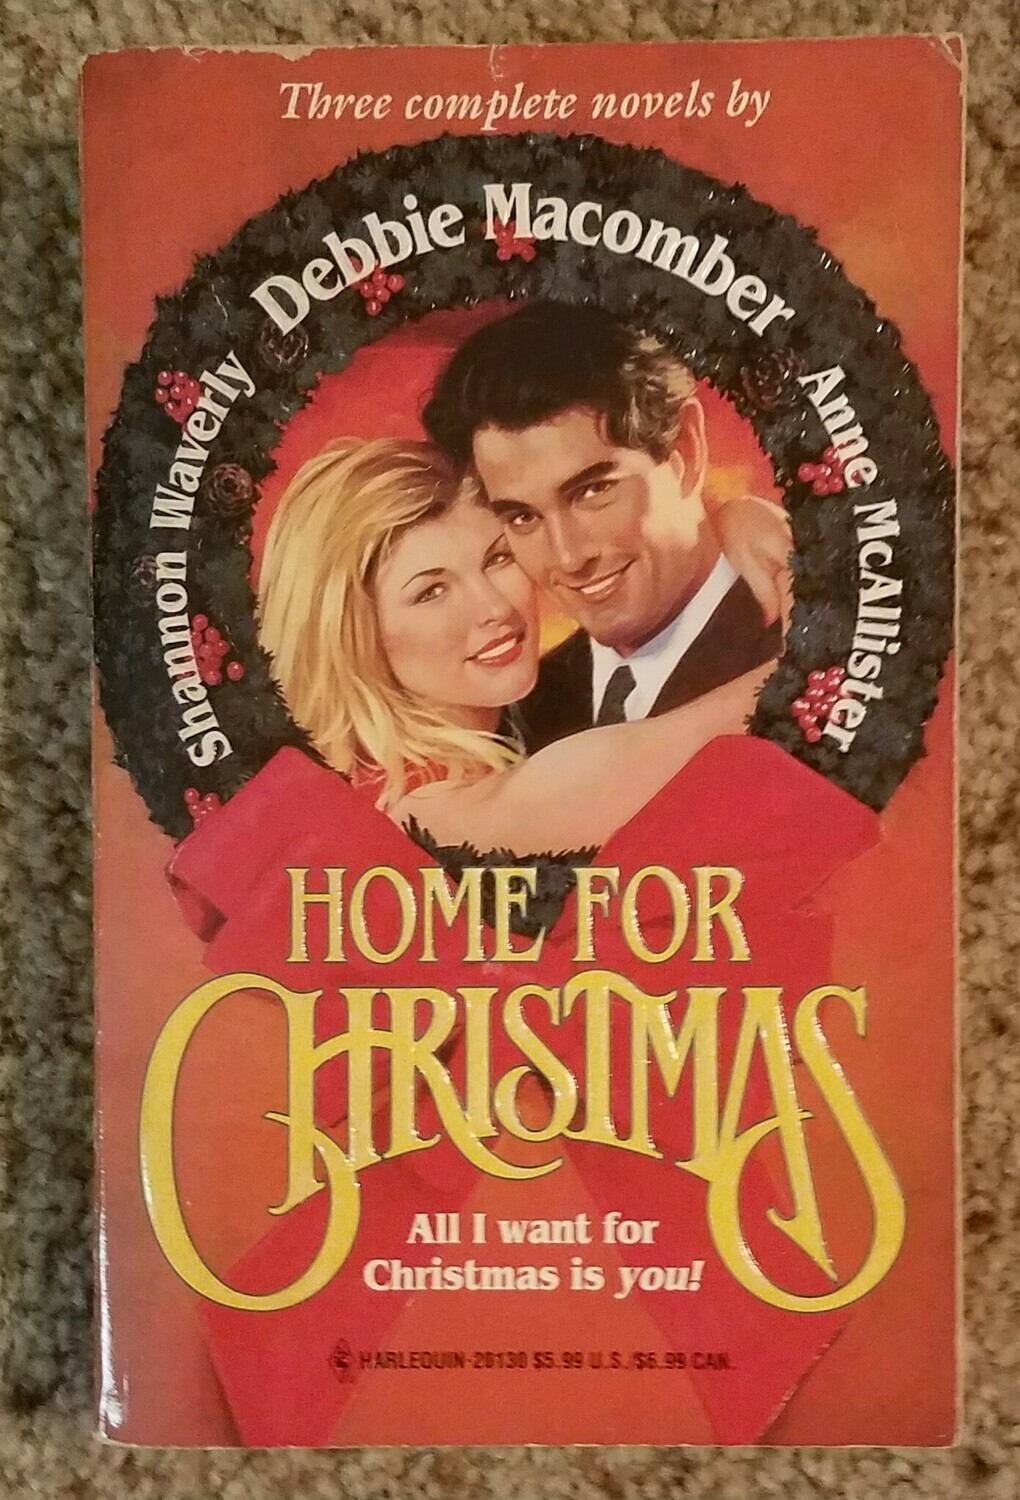 Home for Christmas by Debbie Macomber, Shannon Waverly, and Anne McAllister